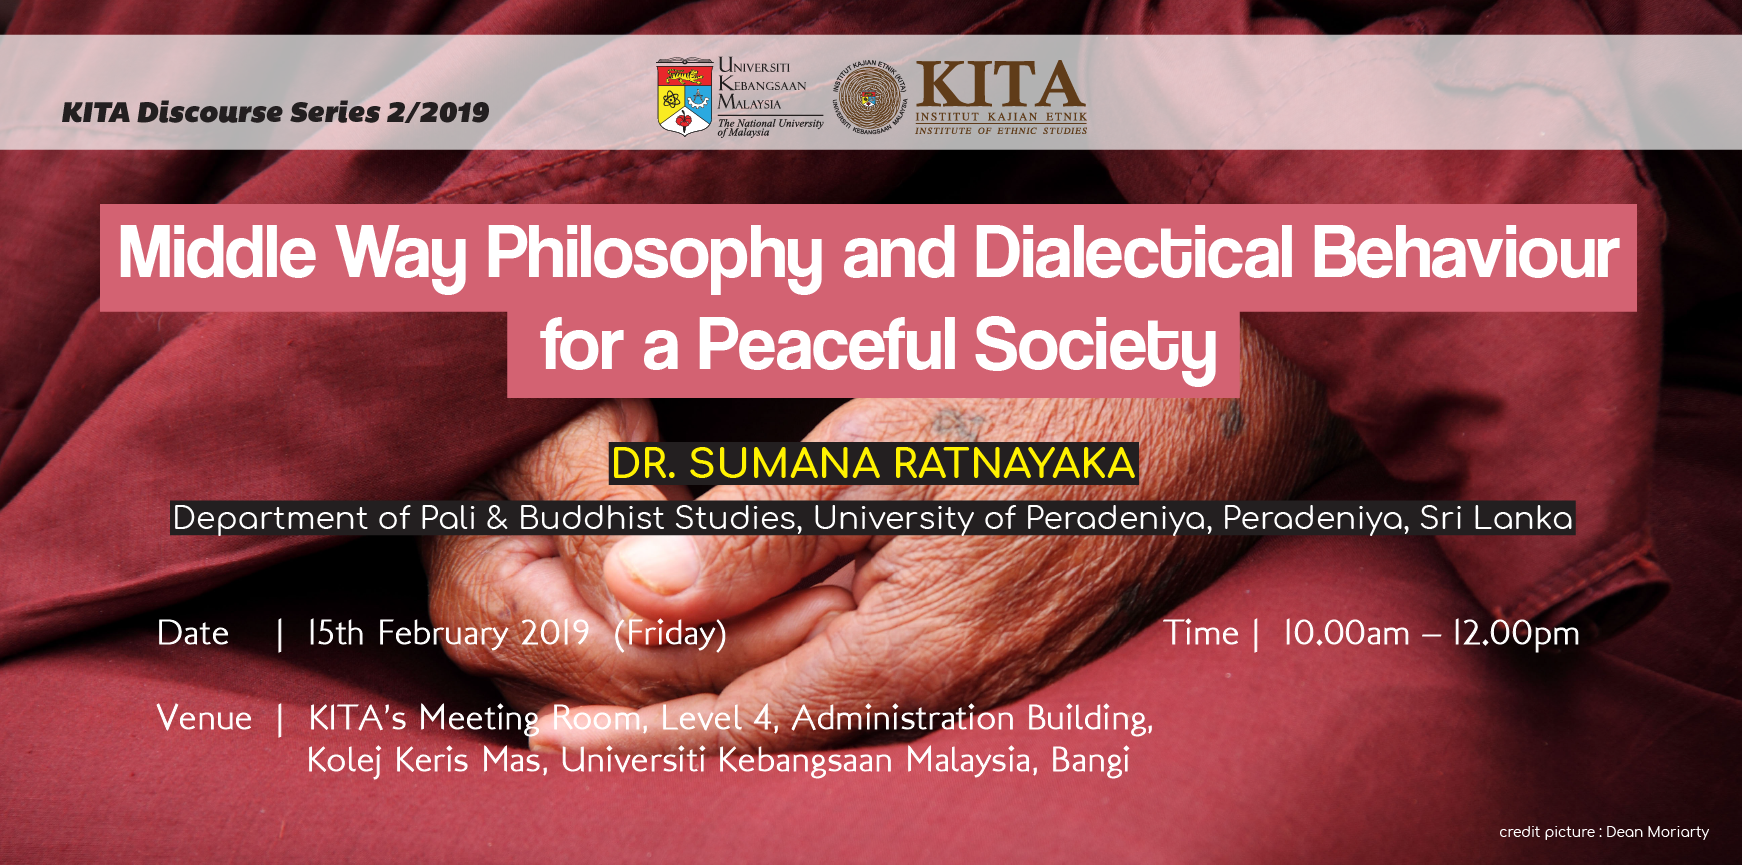 KITA Discourse Series 2/2019: Middle Way Philosophy and Dialectical Behaviour for a Peaceful Society